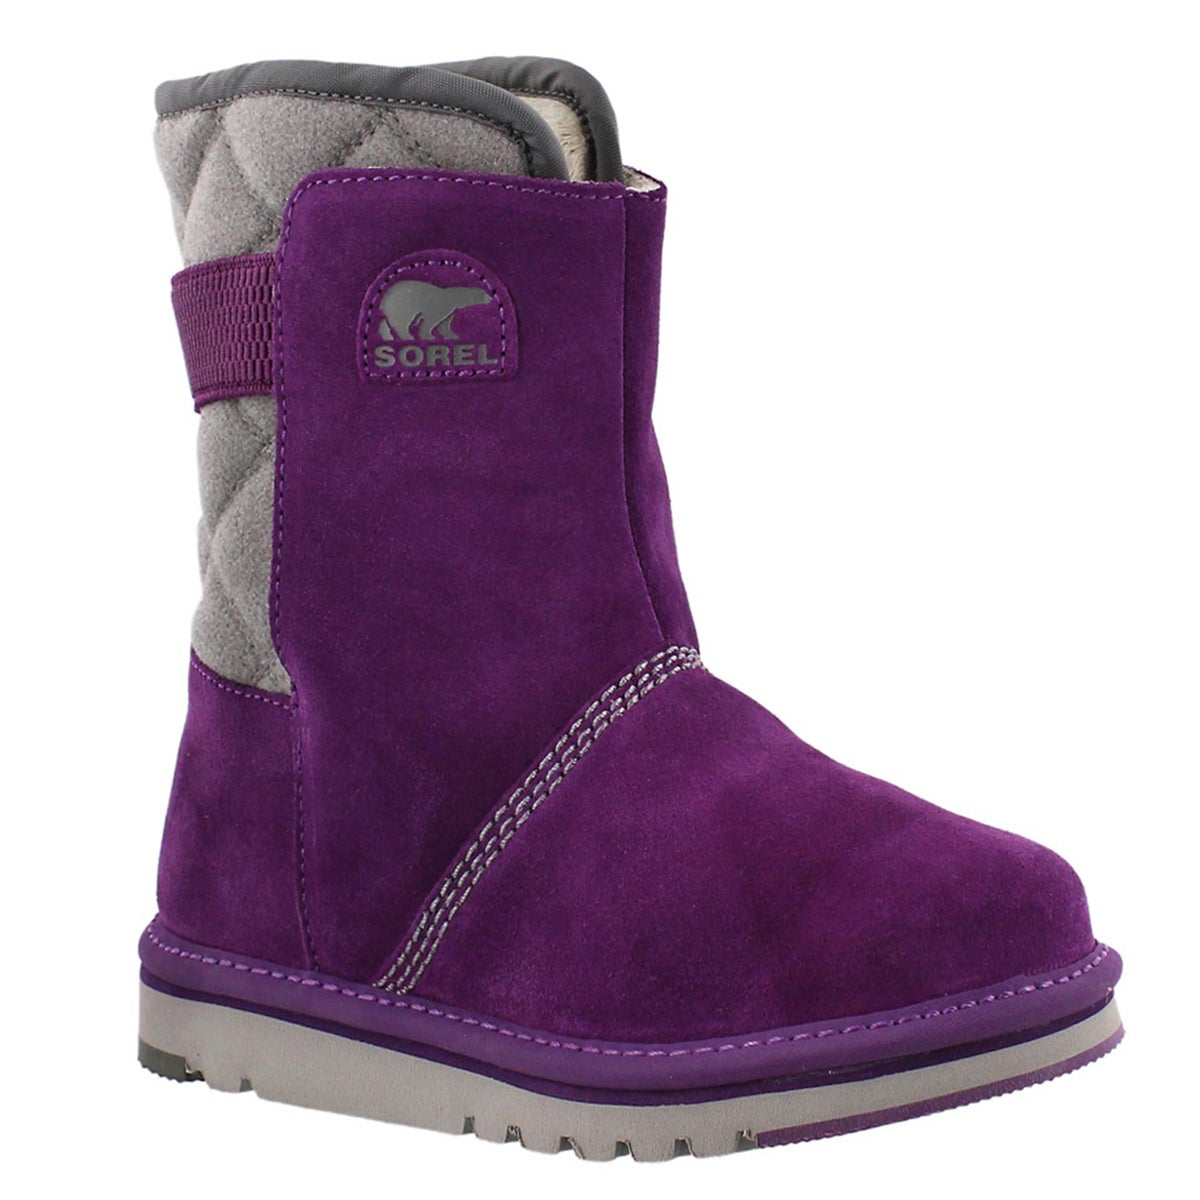 Grls Youth Newbie glory casual boot